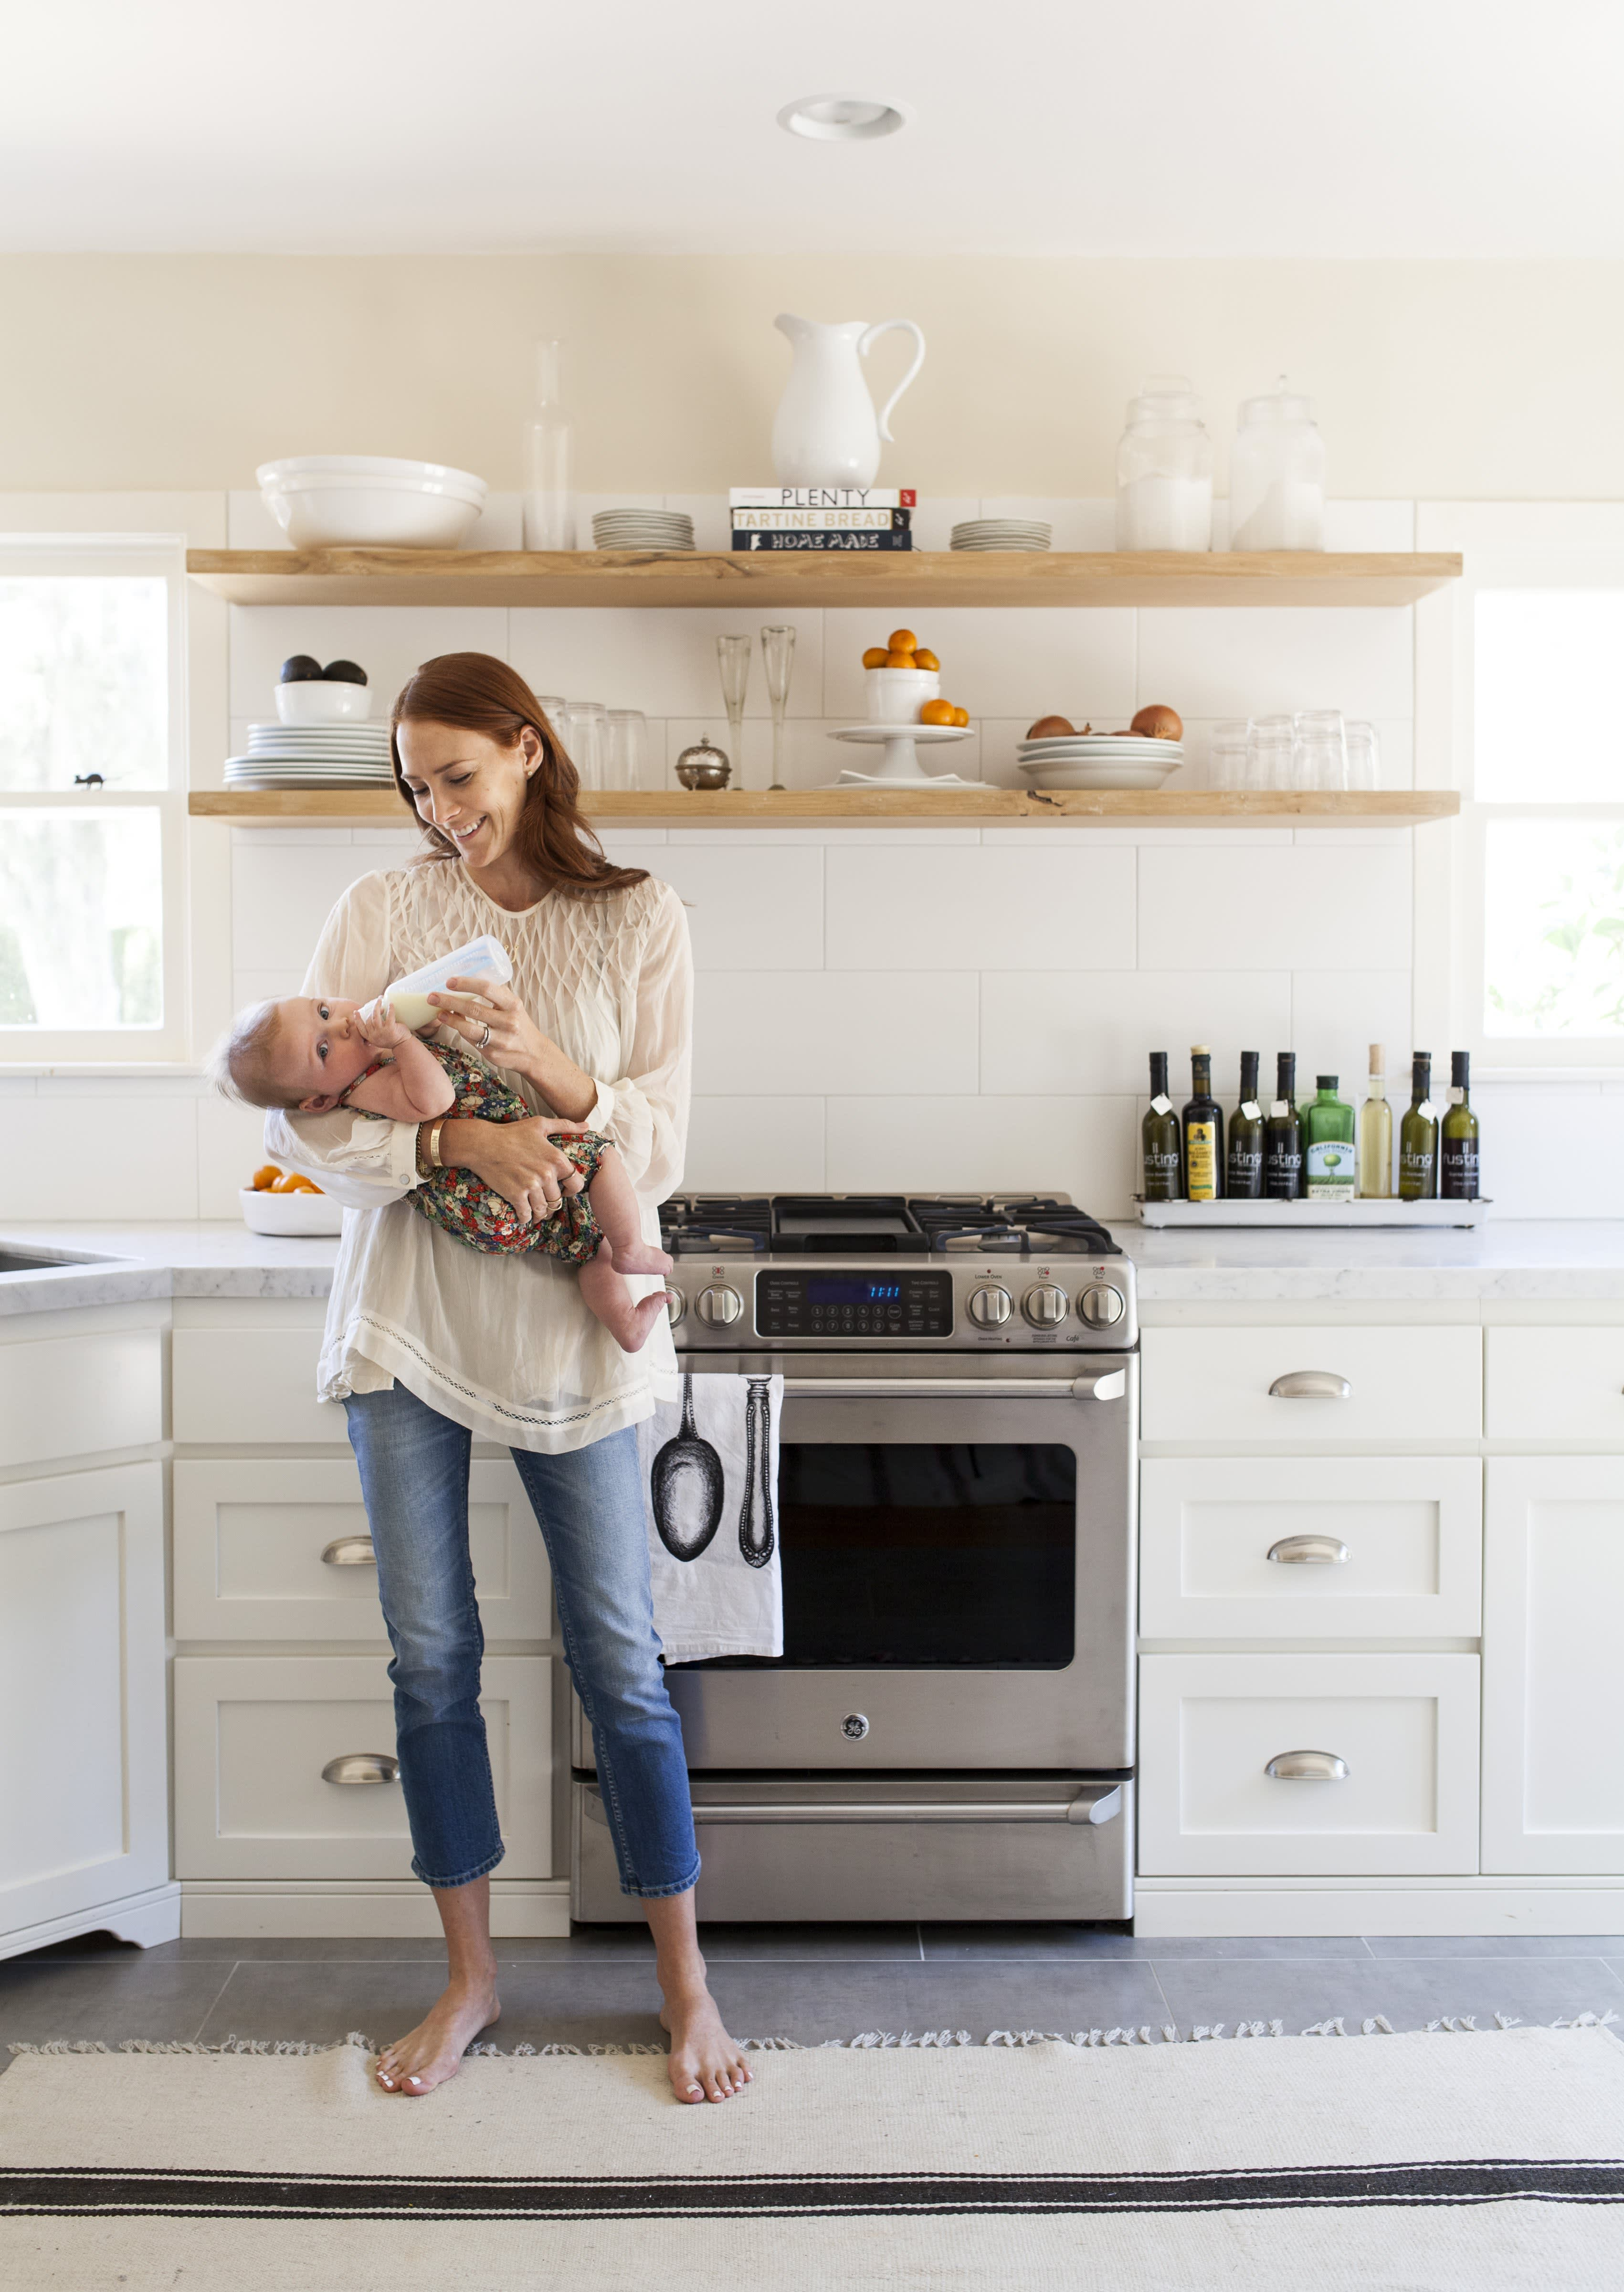 10 Real-Life Kitchens to Inspire Yours: gallery image 1